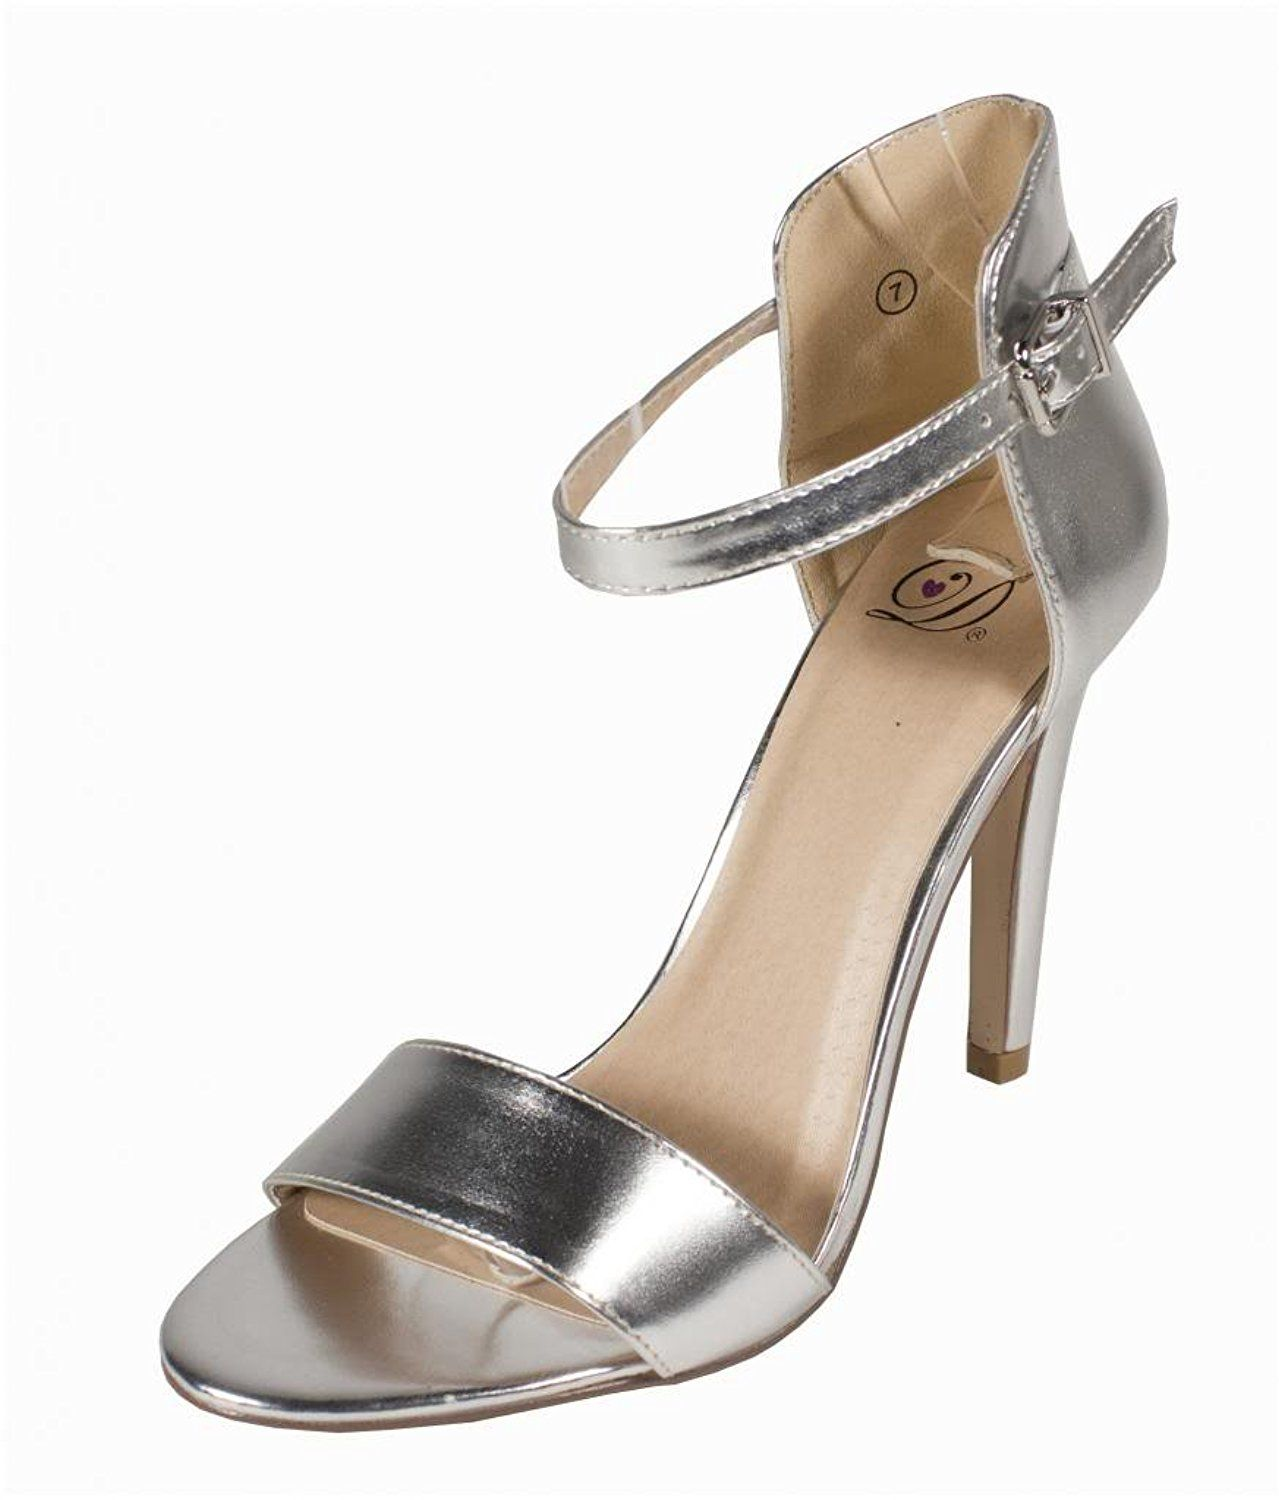 a651096f716 Lustacious Women s Stick Slim High Heel with Adjustable Ankle Strap ...